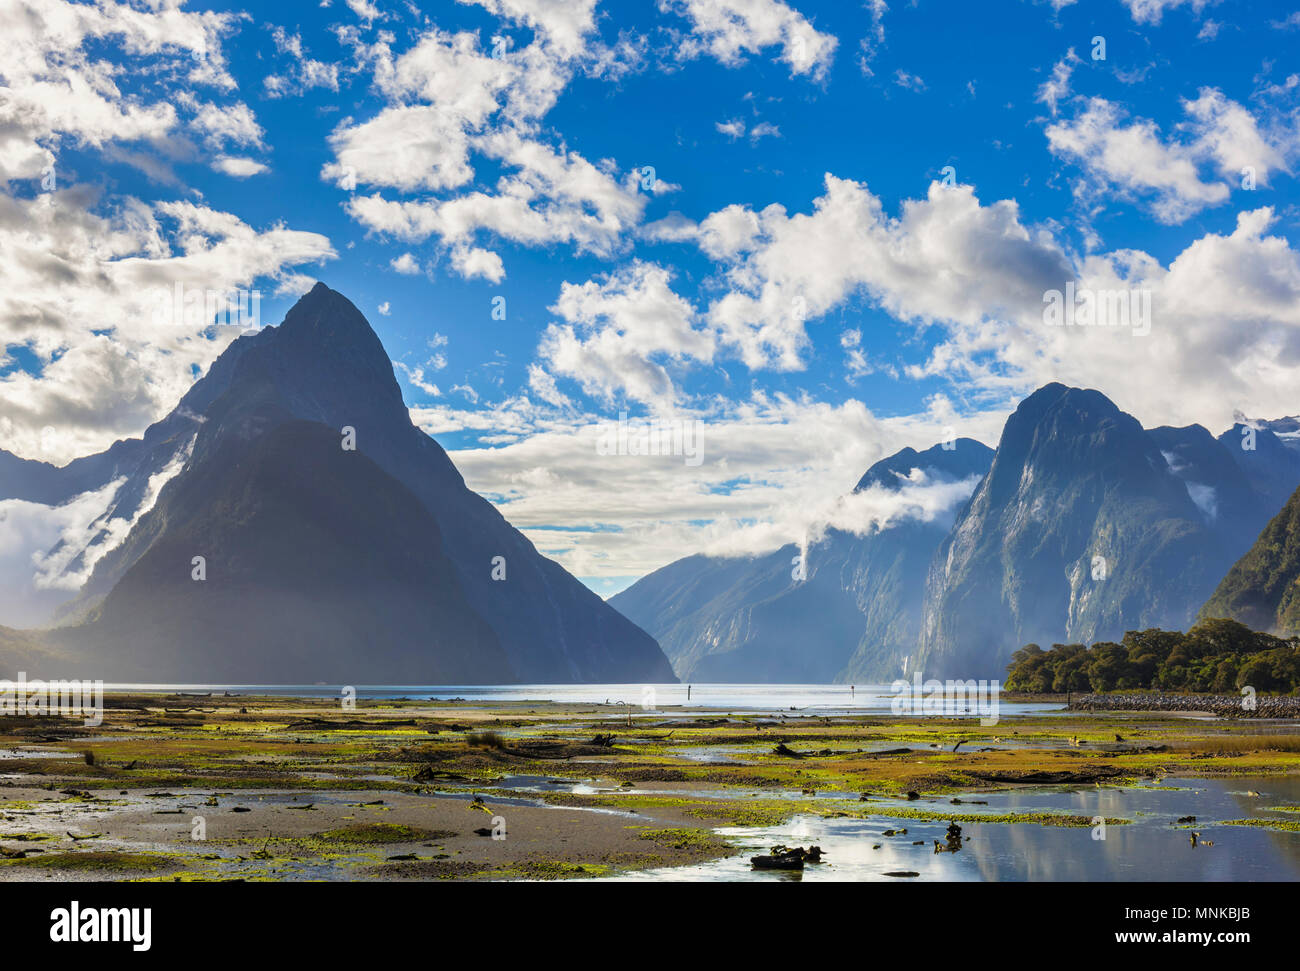 Milford Sound Neuseeland Milford Sound Mitre Peak Fiordland National Park Süden Neuseelands Fjordland National Park South Island nz Stockbild